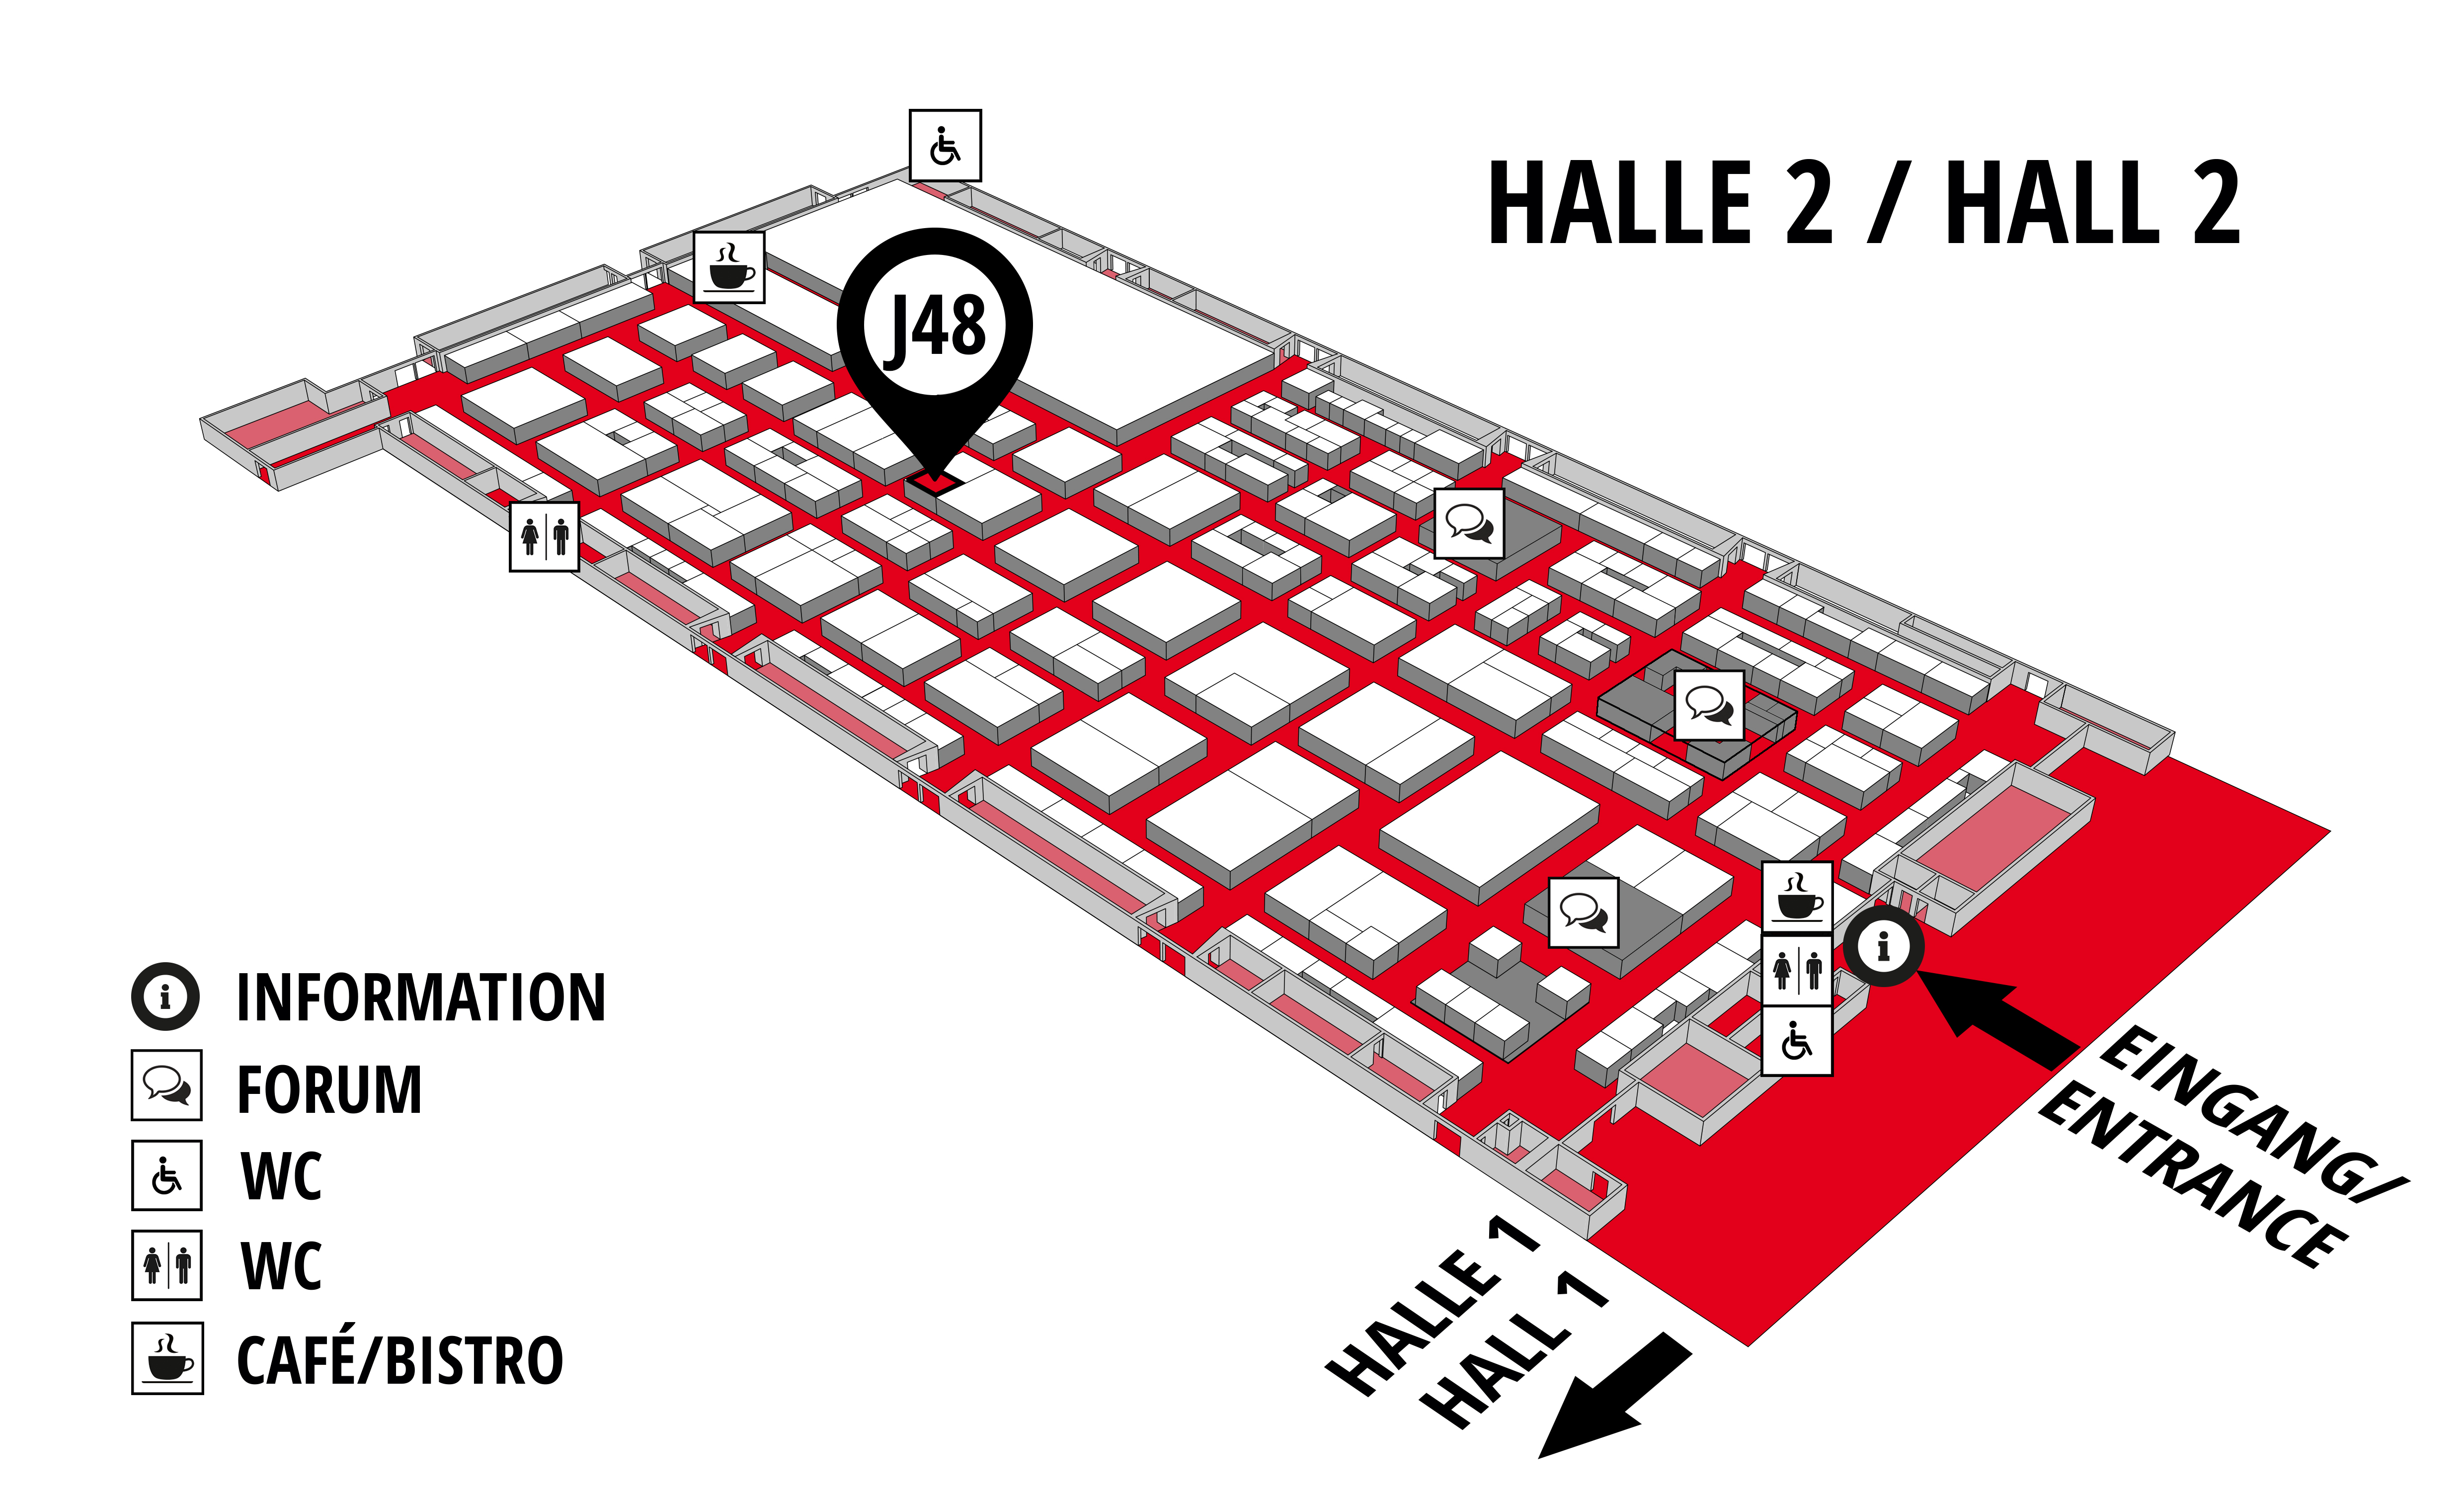 REHAB - Rehabilitation | Therapy | Care | Inclusion hall map (Hall 2): stand J48